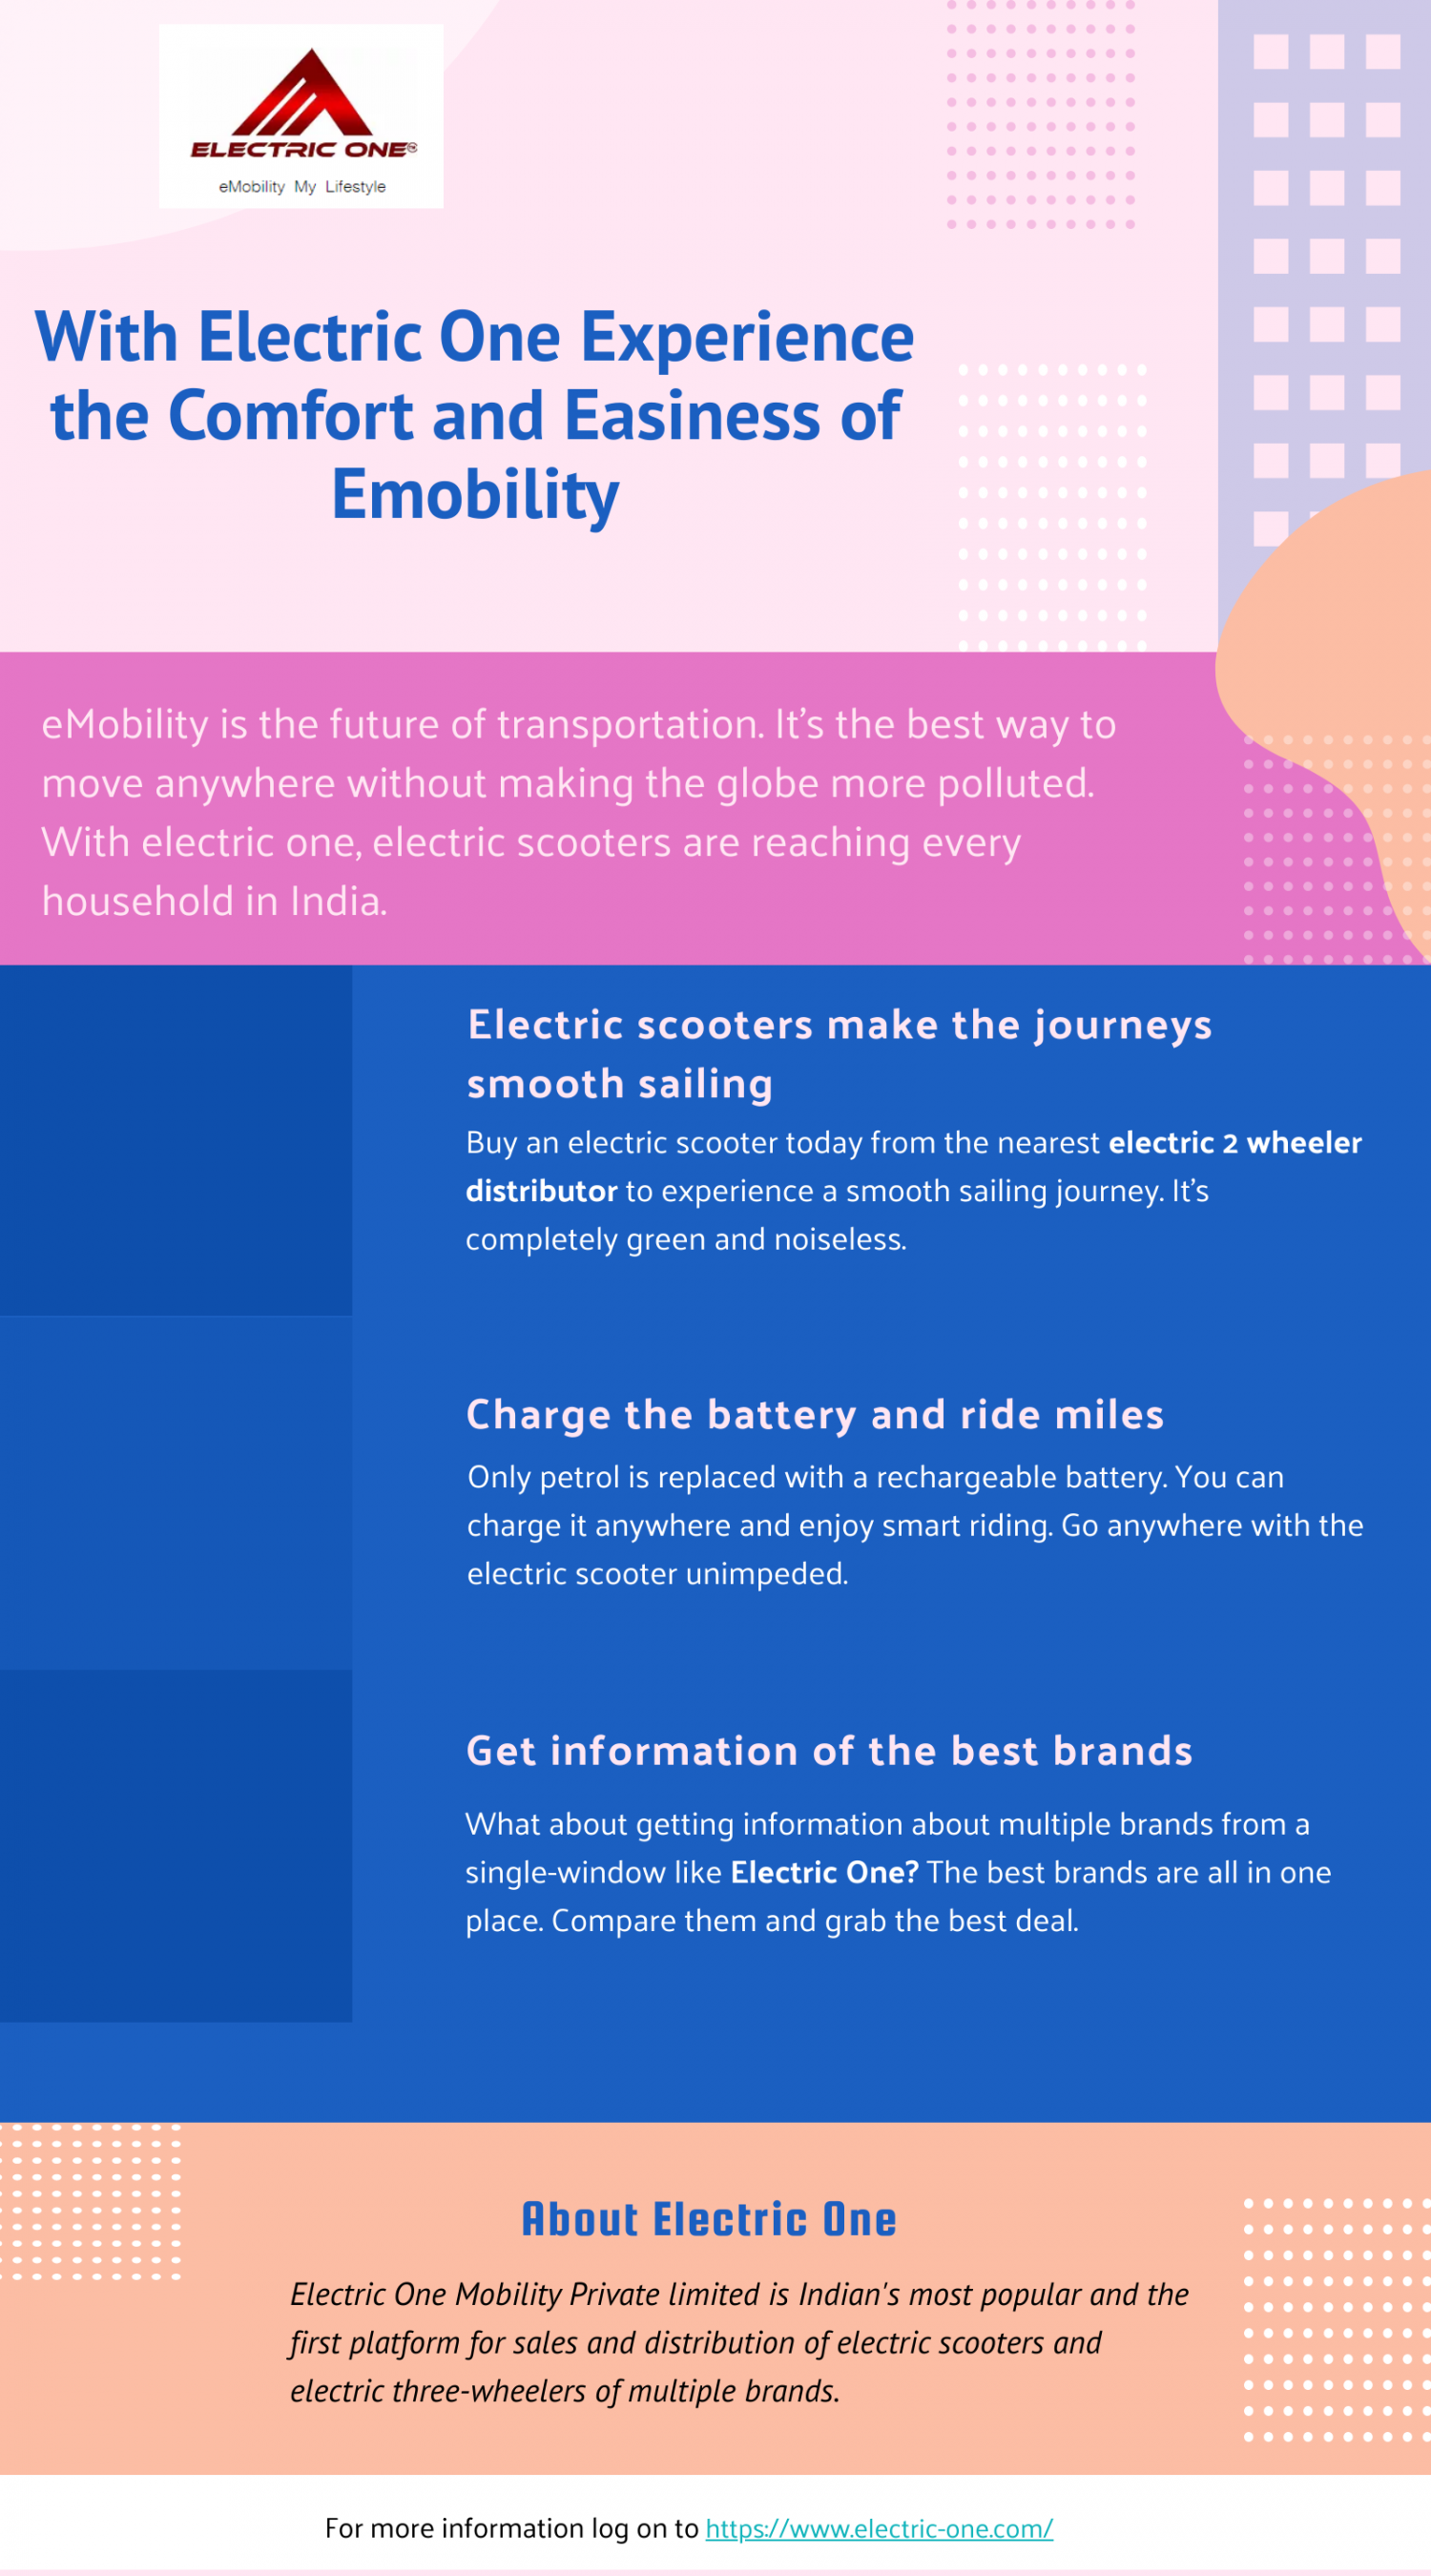 With Electric One Experience the Comfort and Easiness of Emobility Infographic